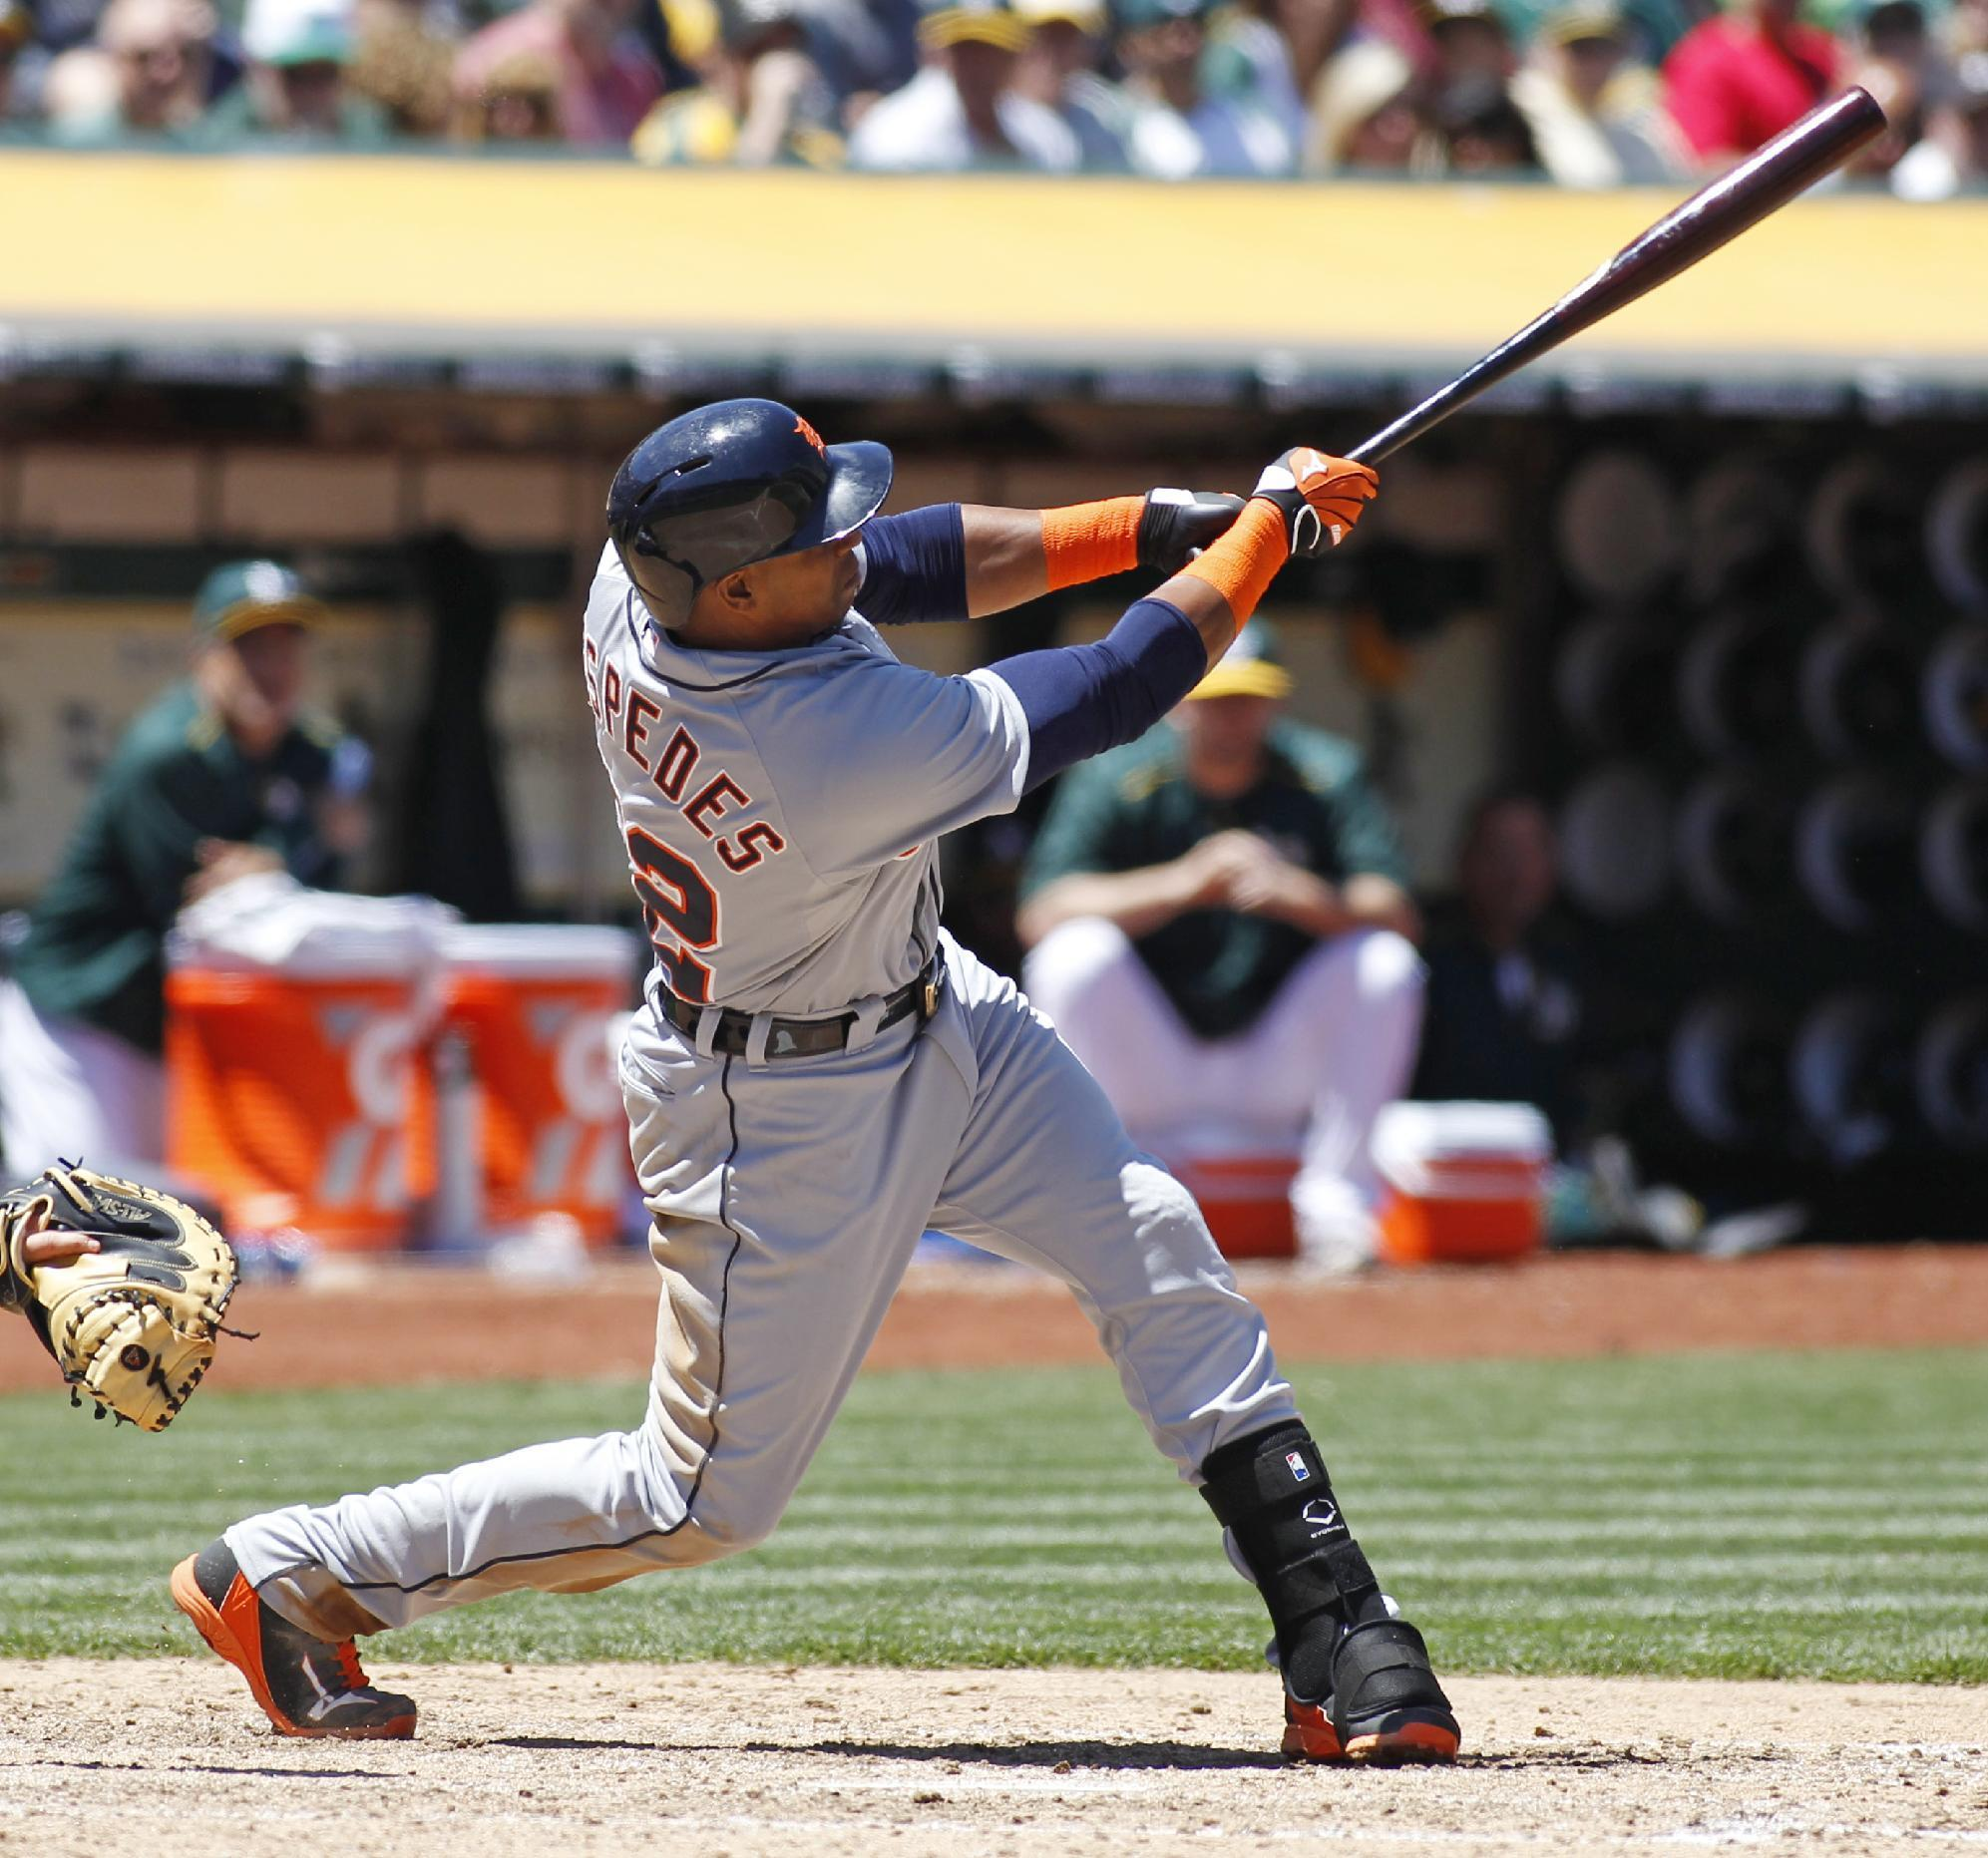 Cespedes homers in Tigers' 3-2 win over Athletics